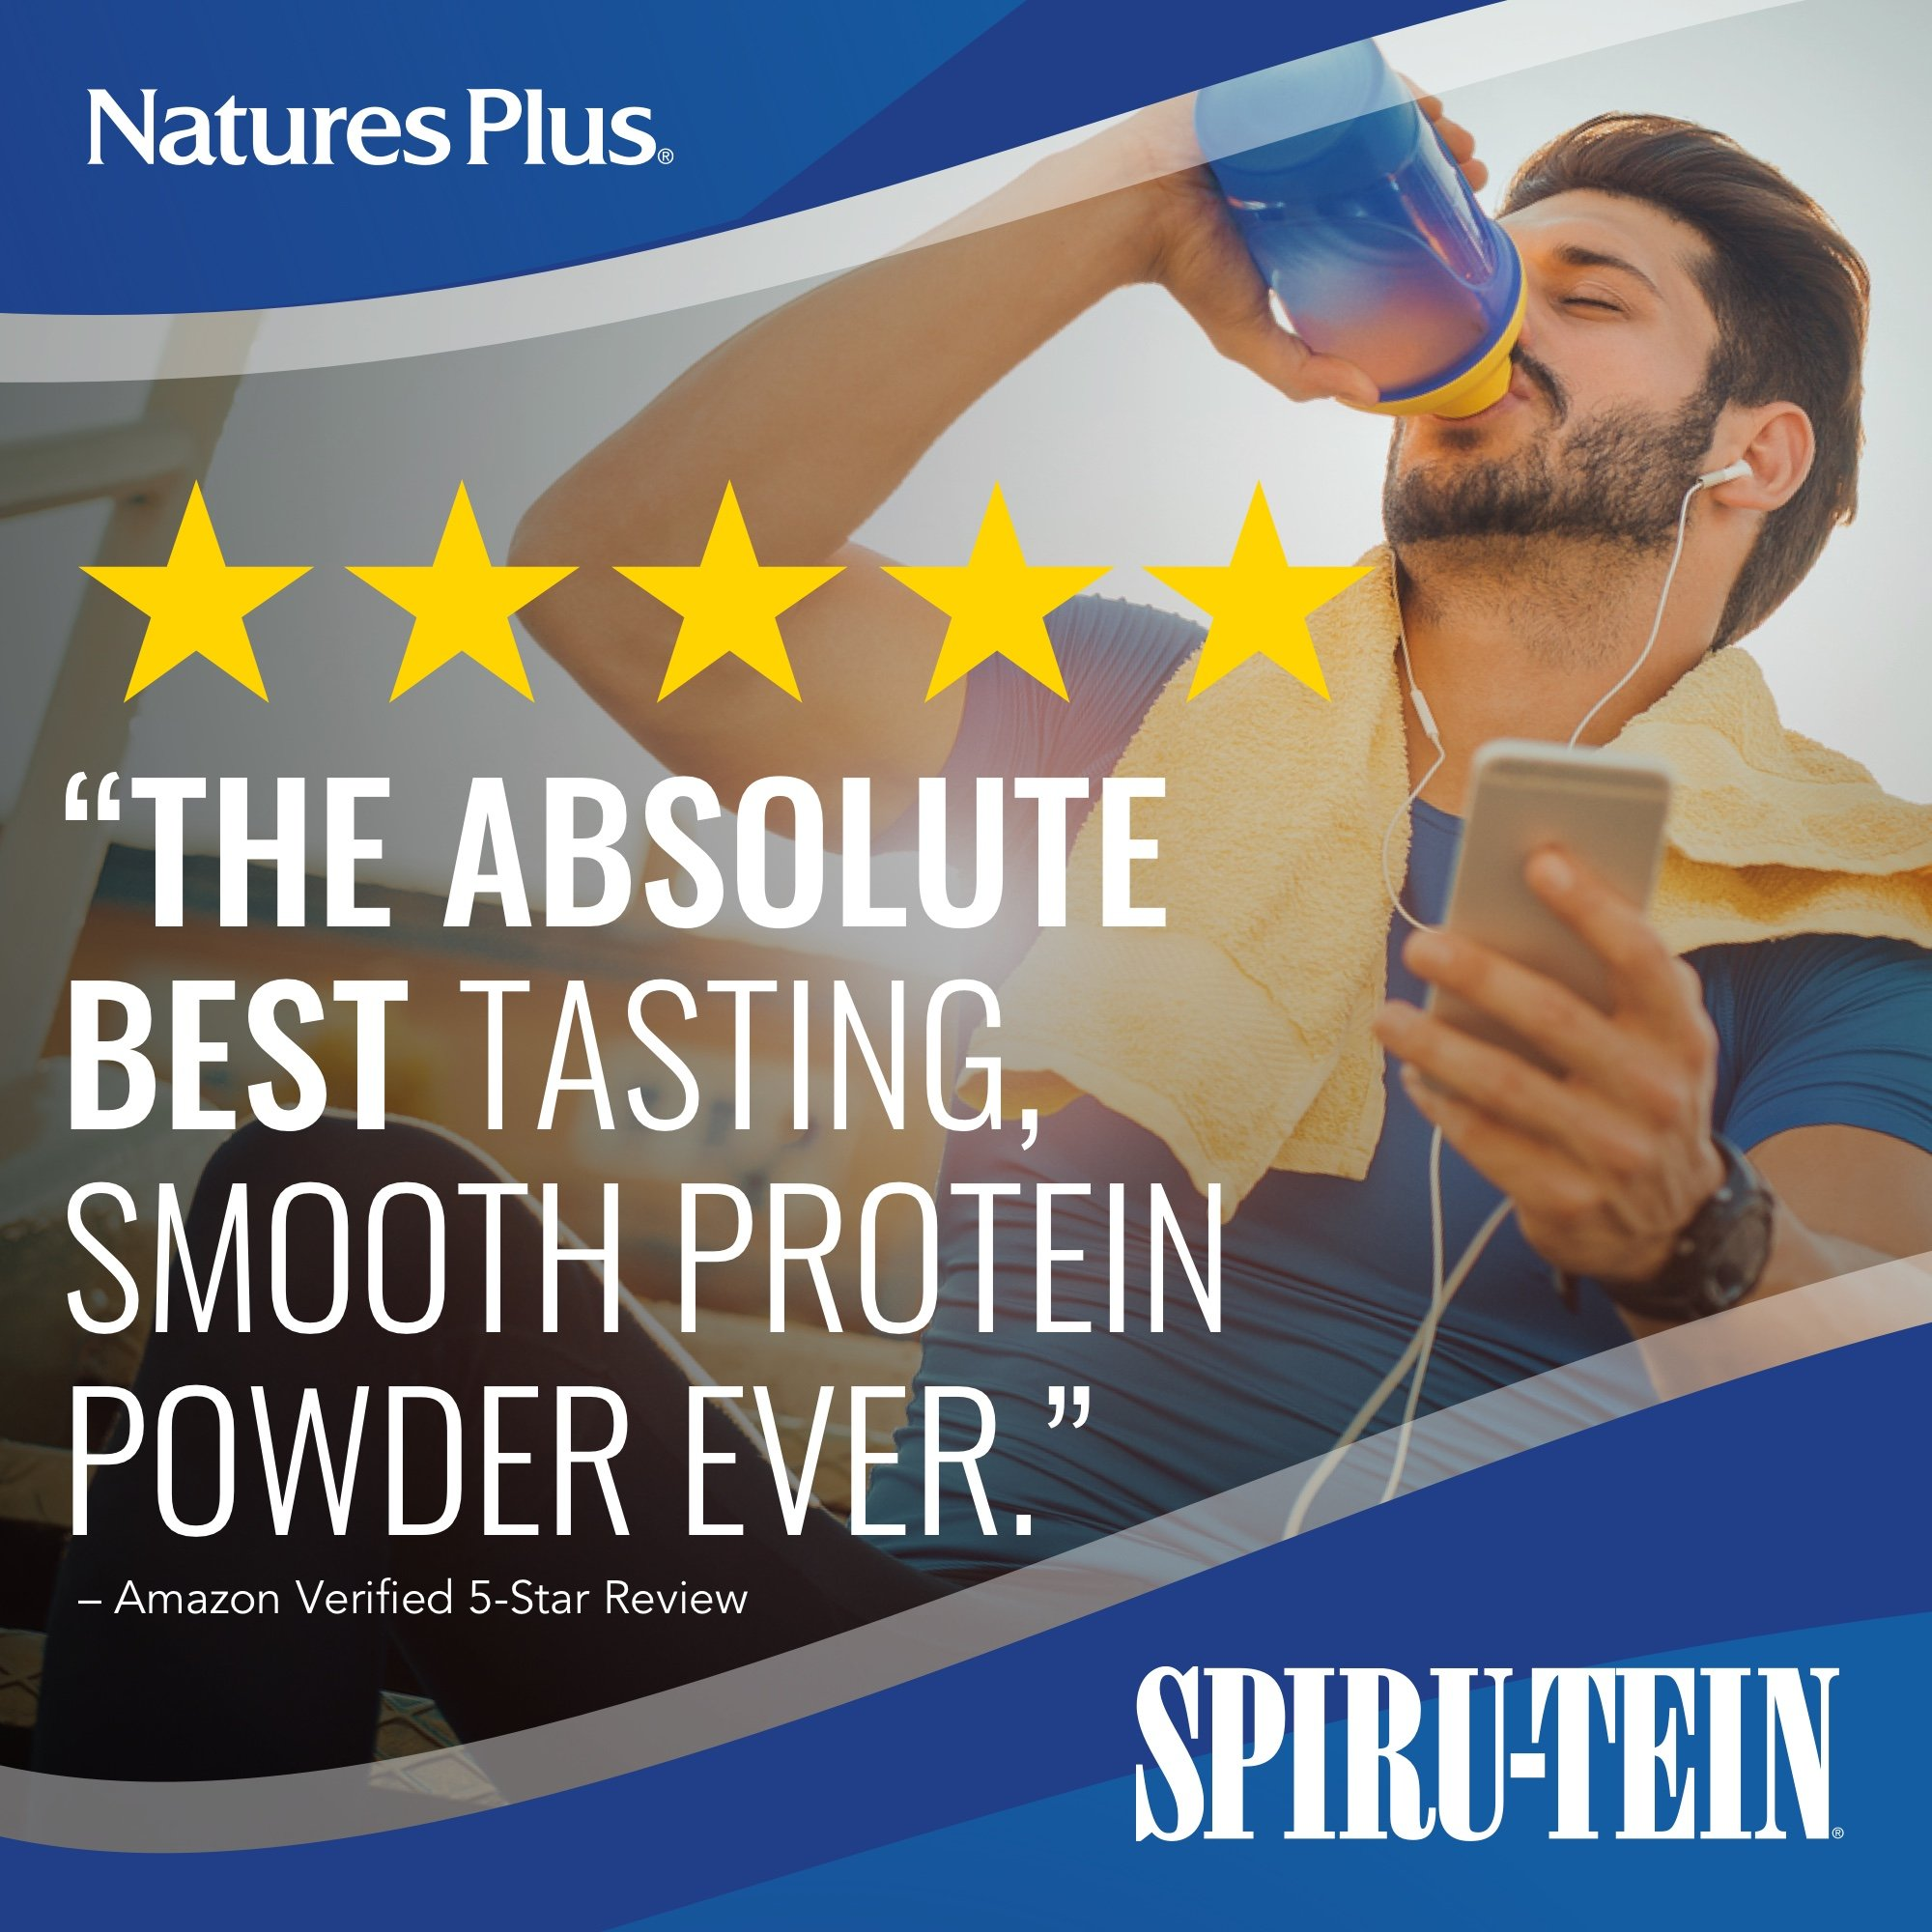 NaturesPlus SPIRU-TEIN Shake - Chocolate - 5 lbs, Spirulina Protein Powder - Plant Based Meal Replacement, Vitamins & Minerals For Energy - Vegetarian, Gluten-Free - 81 Servings by Nature's Plus (Image #2)